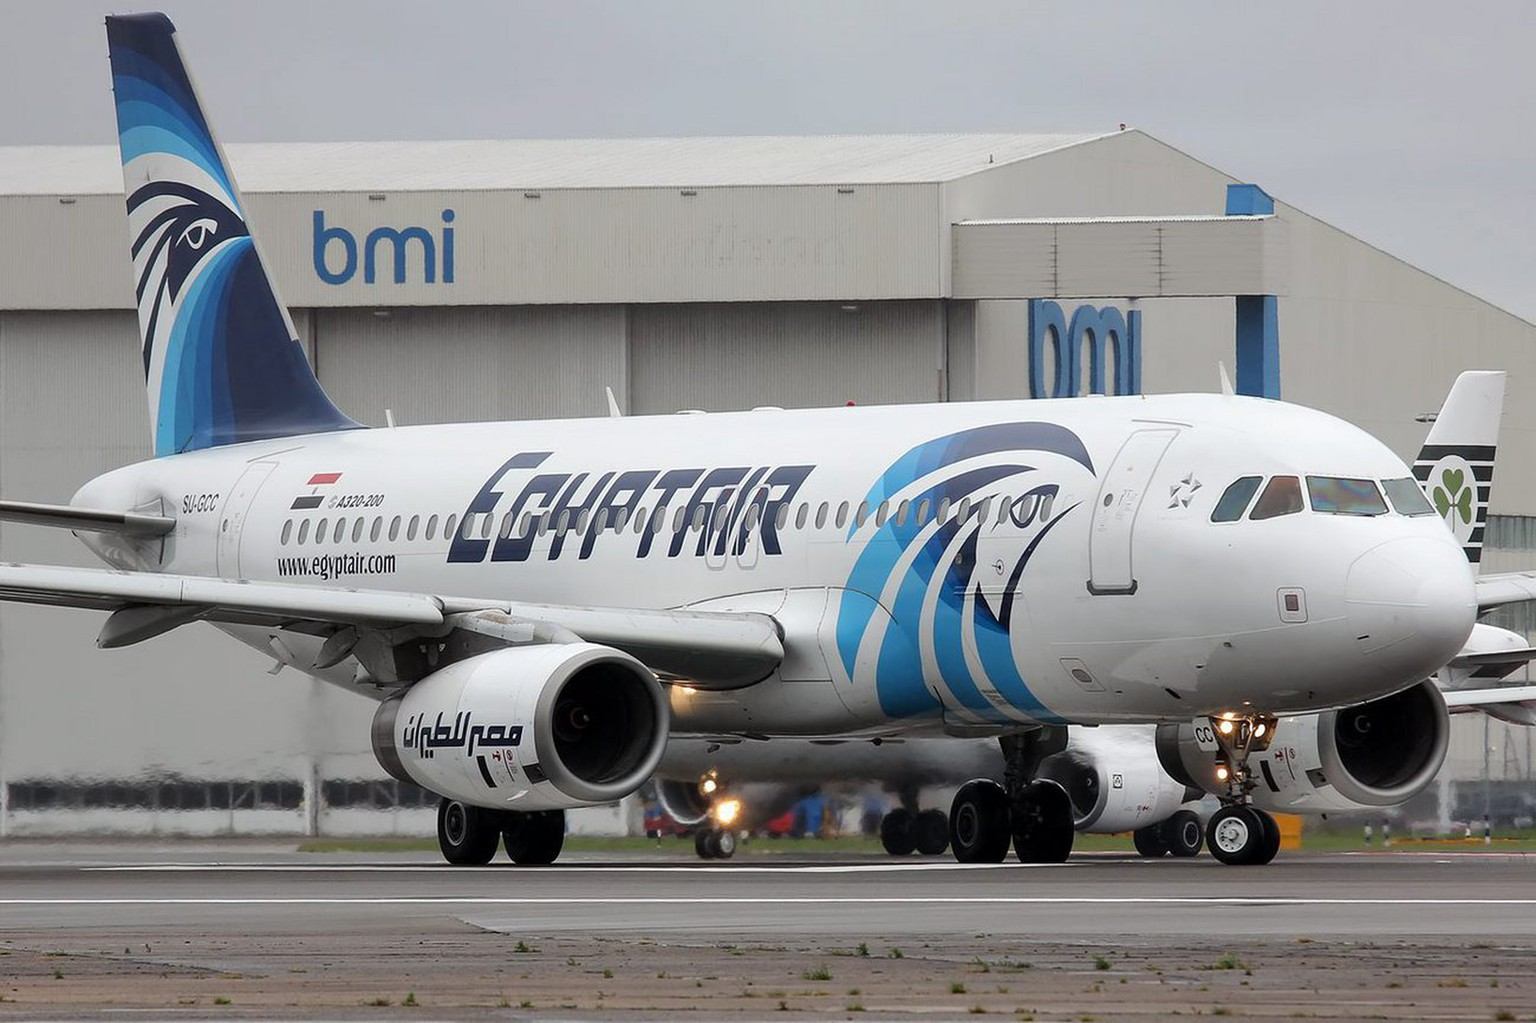 epa05316714 A picture made available 19 May 2016 shows an EgyptAir Airbus A320 with SU-GCC registration at Heathrow Airport, London, Britain, 09 April 2012. According to media reports quoting Egyptair on 19 May 2016, the EgyptAir flight MS804 disappeared off radar some 16km after entering Egypt's airspace. The plane, said to be carrying 66 people on board, 56 passengers and 10 crew members, took off from France's Charles de Gaulle airport on 18 May night and was expected to land in Cairo on 19 May early morning.  EPA/KRZYSZTOF KACZALA MANDATORY CREDIT: KRZYSZTOF KACZALA.  EDITORIAL USE ONLY/NO SALES